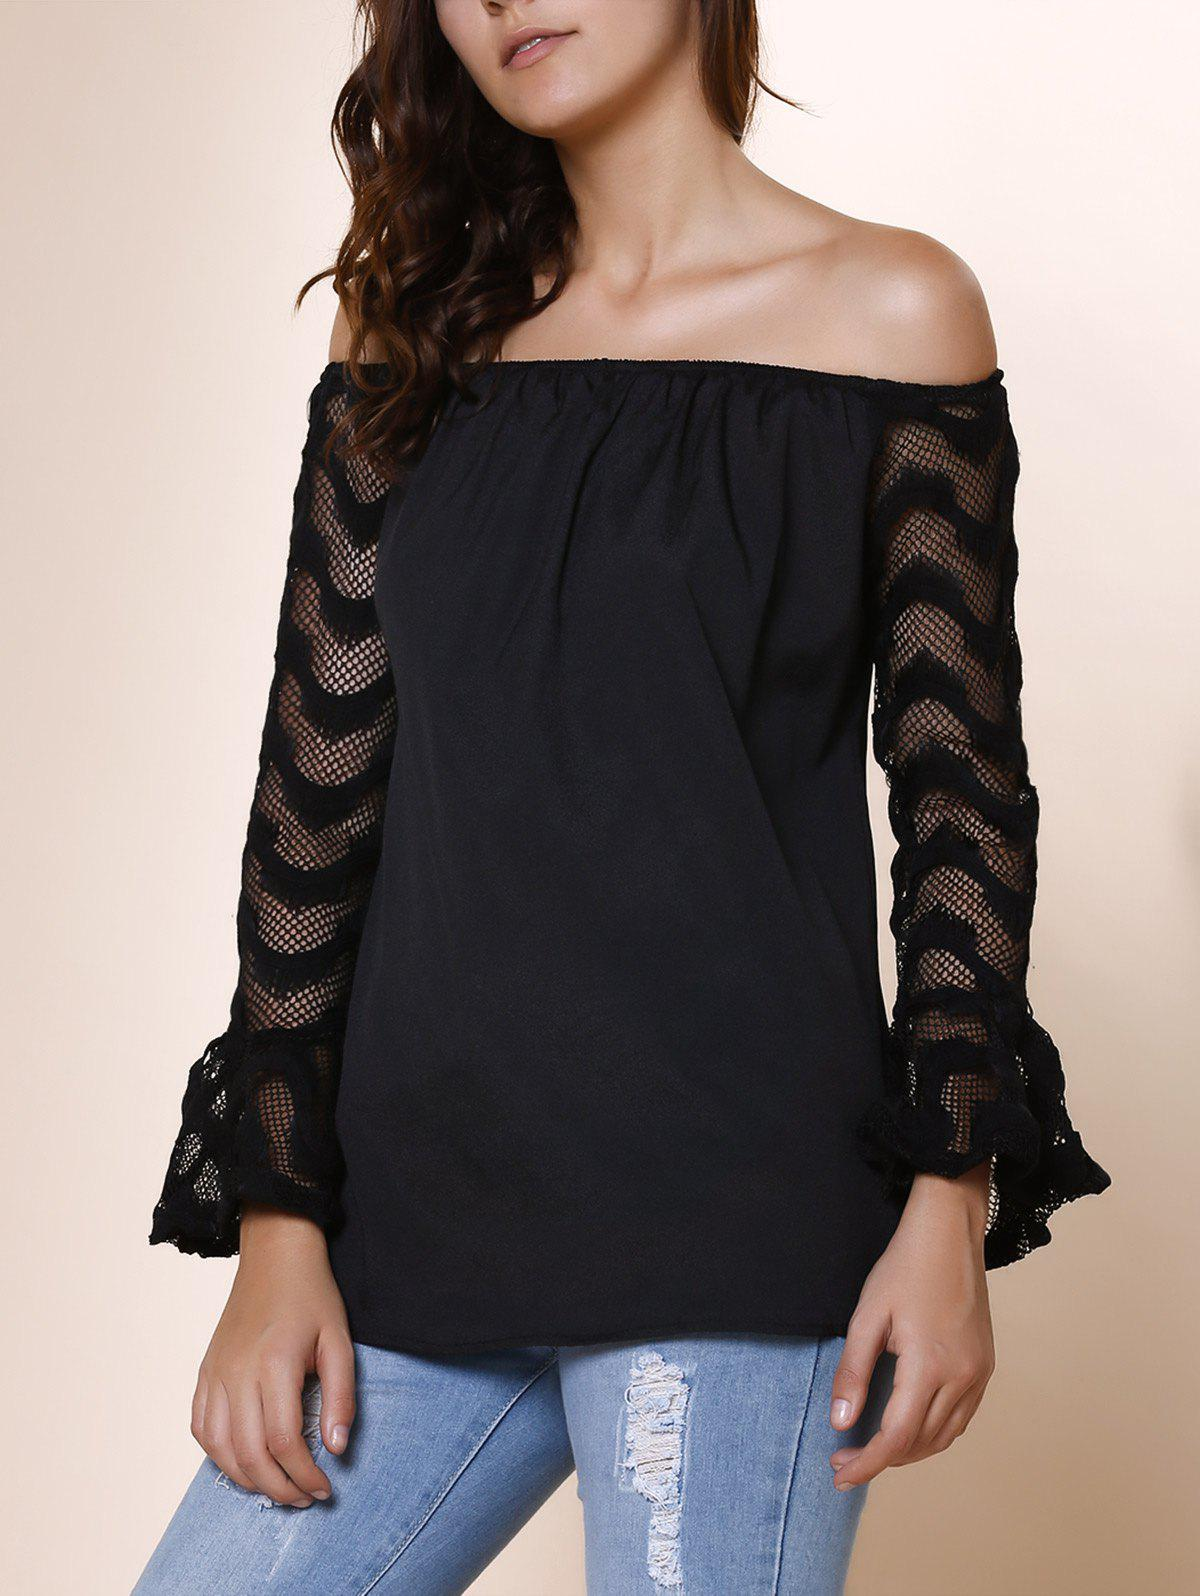 Fashionable Off-The-Shoulder Lace Splicing Sleeve Black T-Shirt For Women - BLACK S